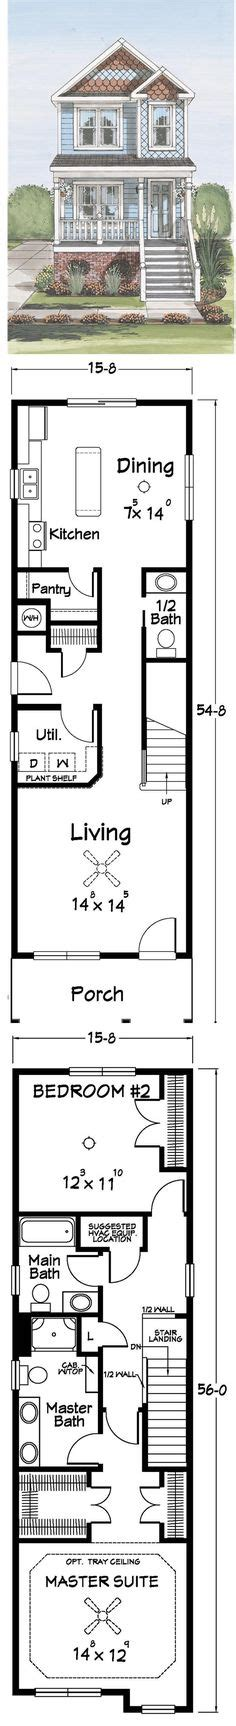 narrow lot 2 story house plans 1000 images about the sims 3 house design on pinterest sims 3 the sims and sims